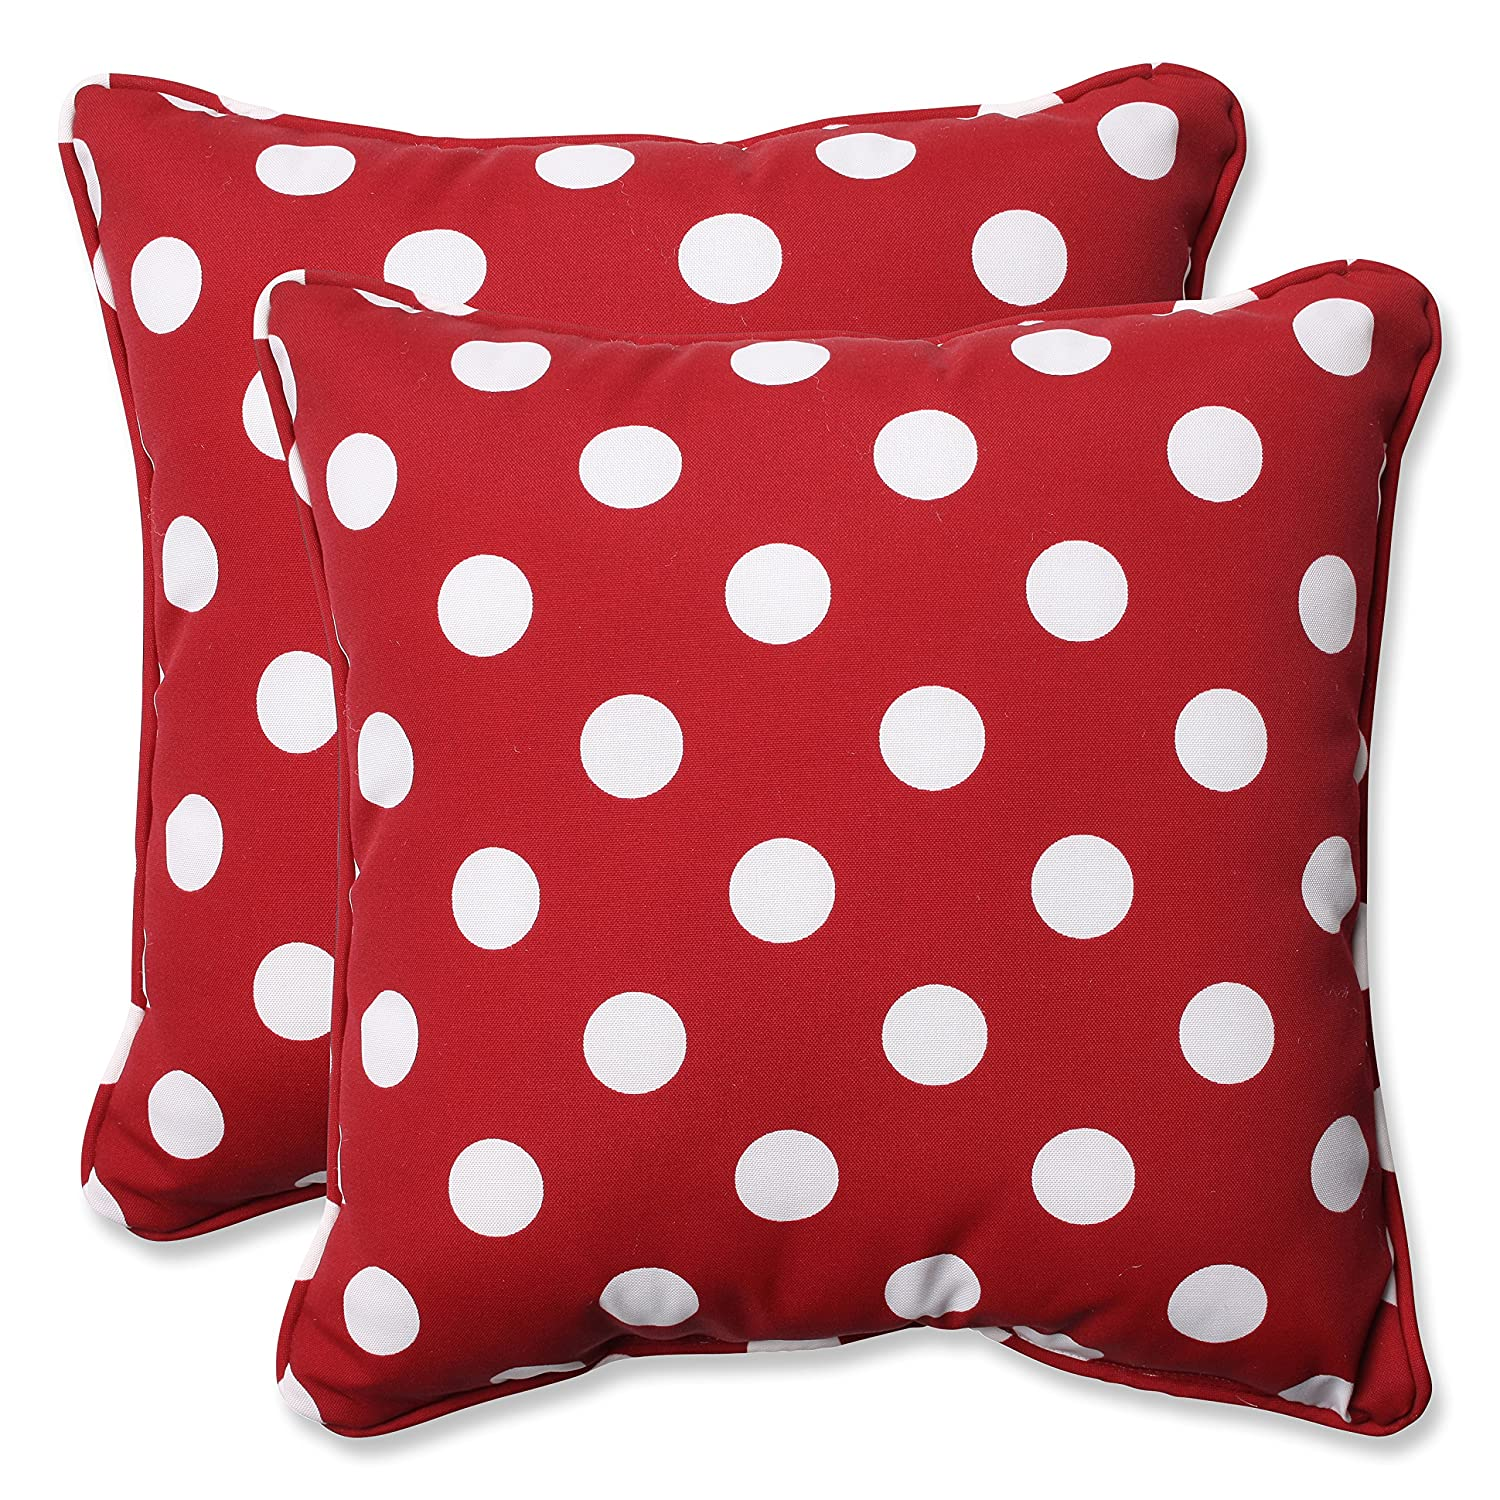 Amazon.com: Pillow Perfect Decorative Red/White Polka Dot Toss ...